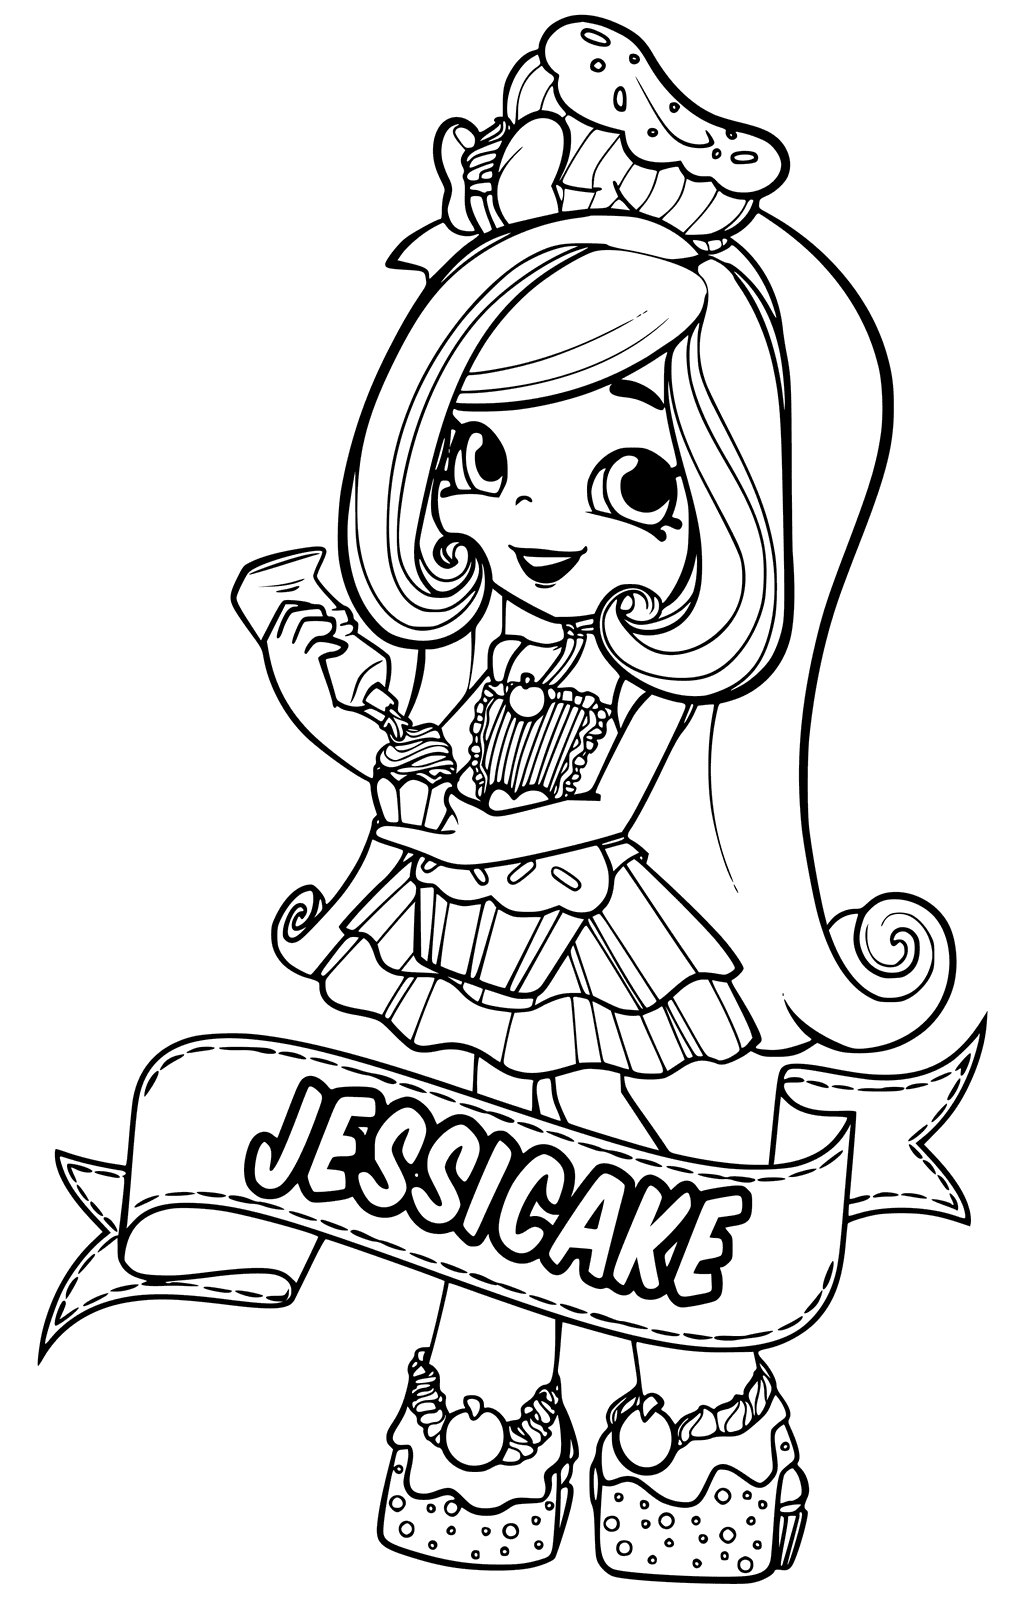 Coloring Rocks Shopkins Coloring Pages Free Printable Shopkins Colouring Pages Cute Coloring Pages